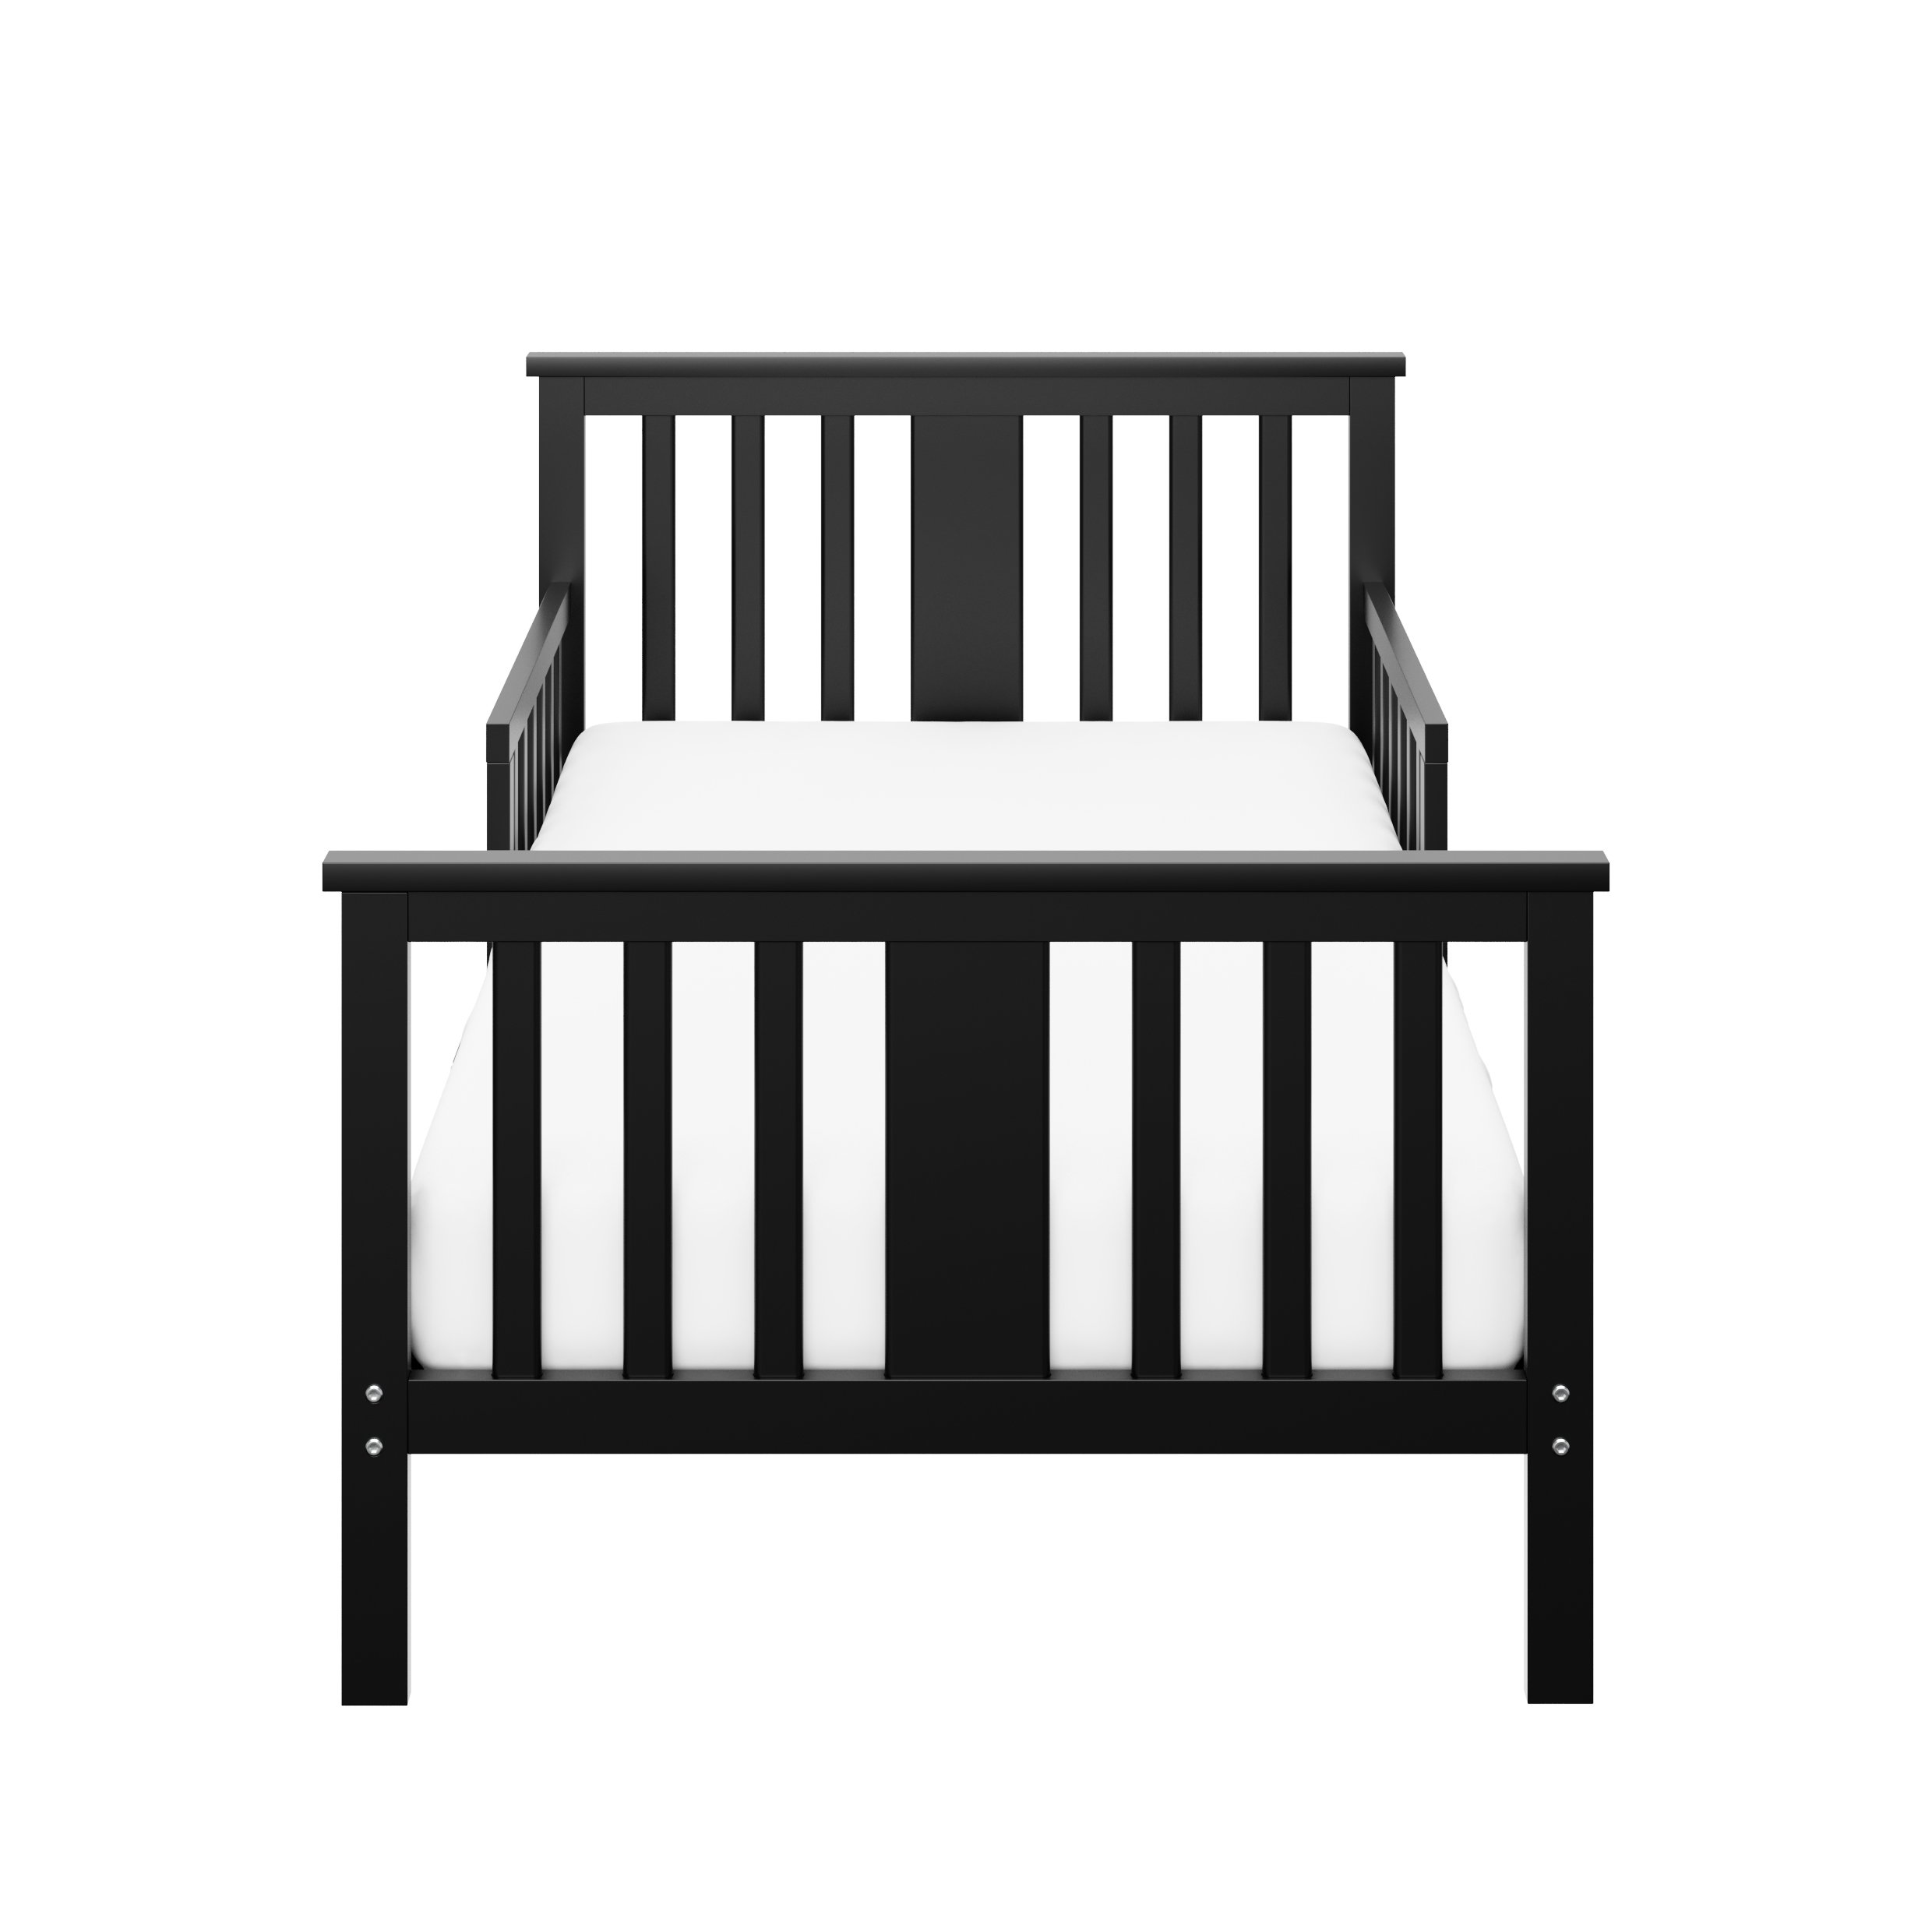 Storkcraft Mission Ridge Toddler Bed Black, Fits Standard-Size Toddler Mattress (Not Included), Guardrail on Both Sides, Meets or Exceeds All Federal Safety Standards, Pine & Composite Construction by Stork Craft (Image #1)